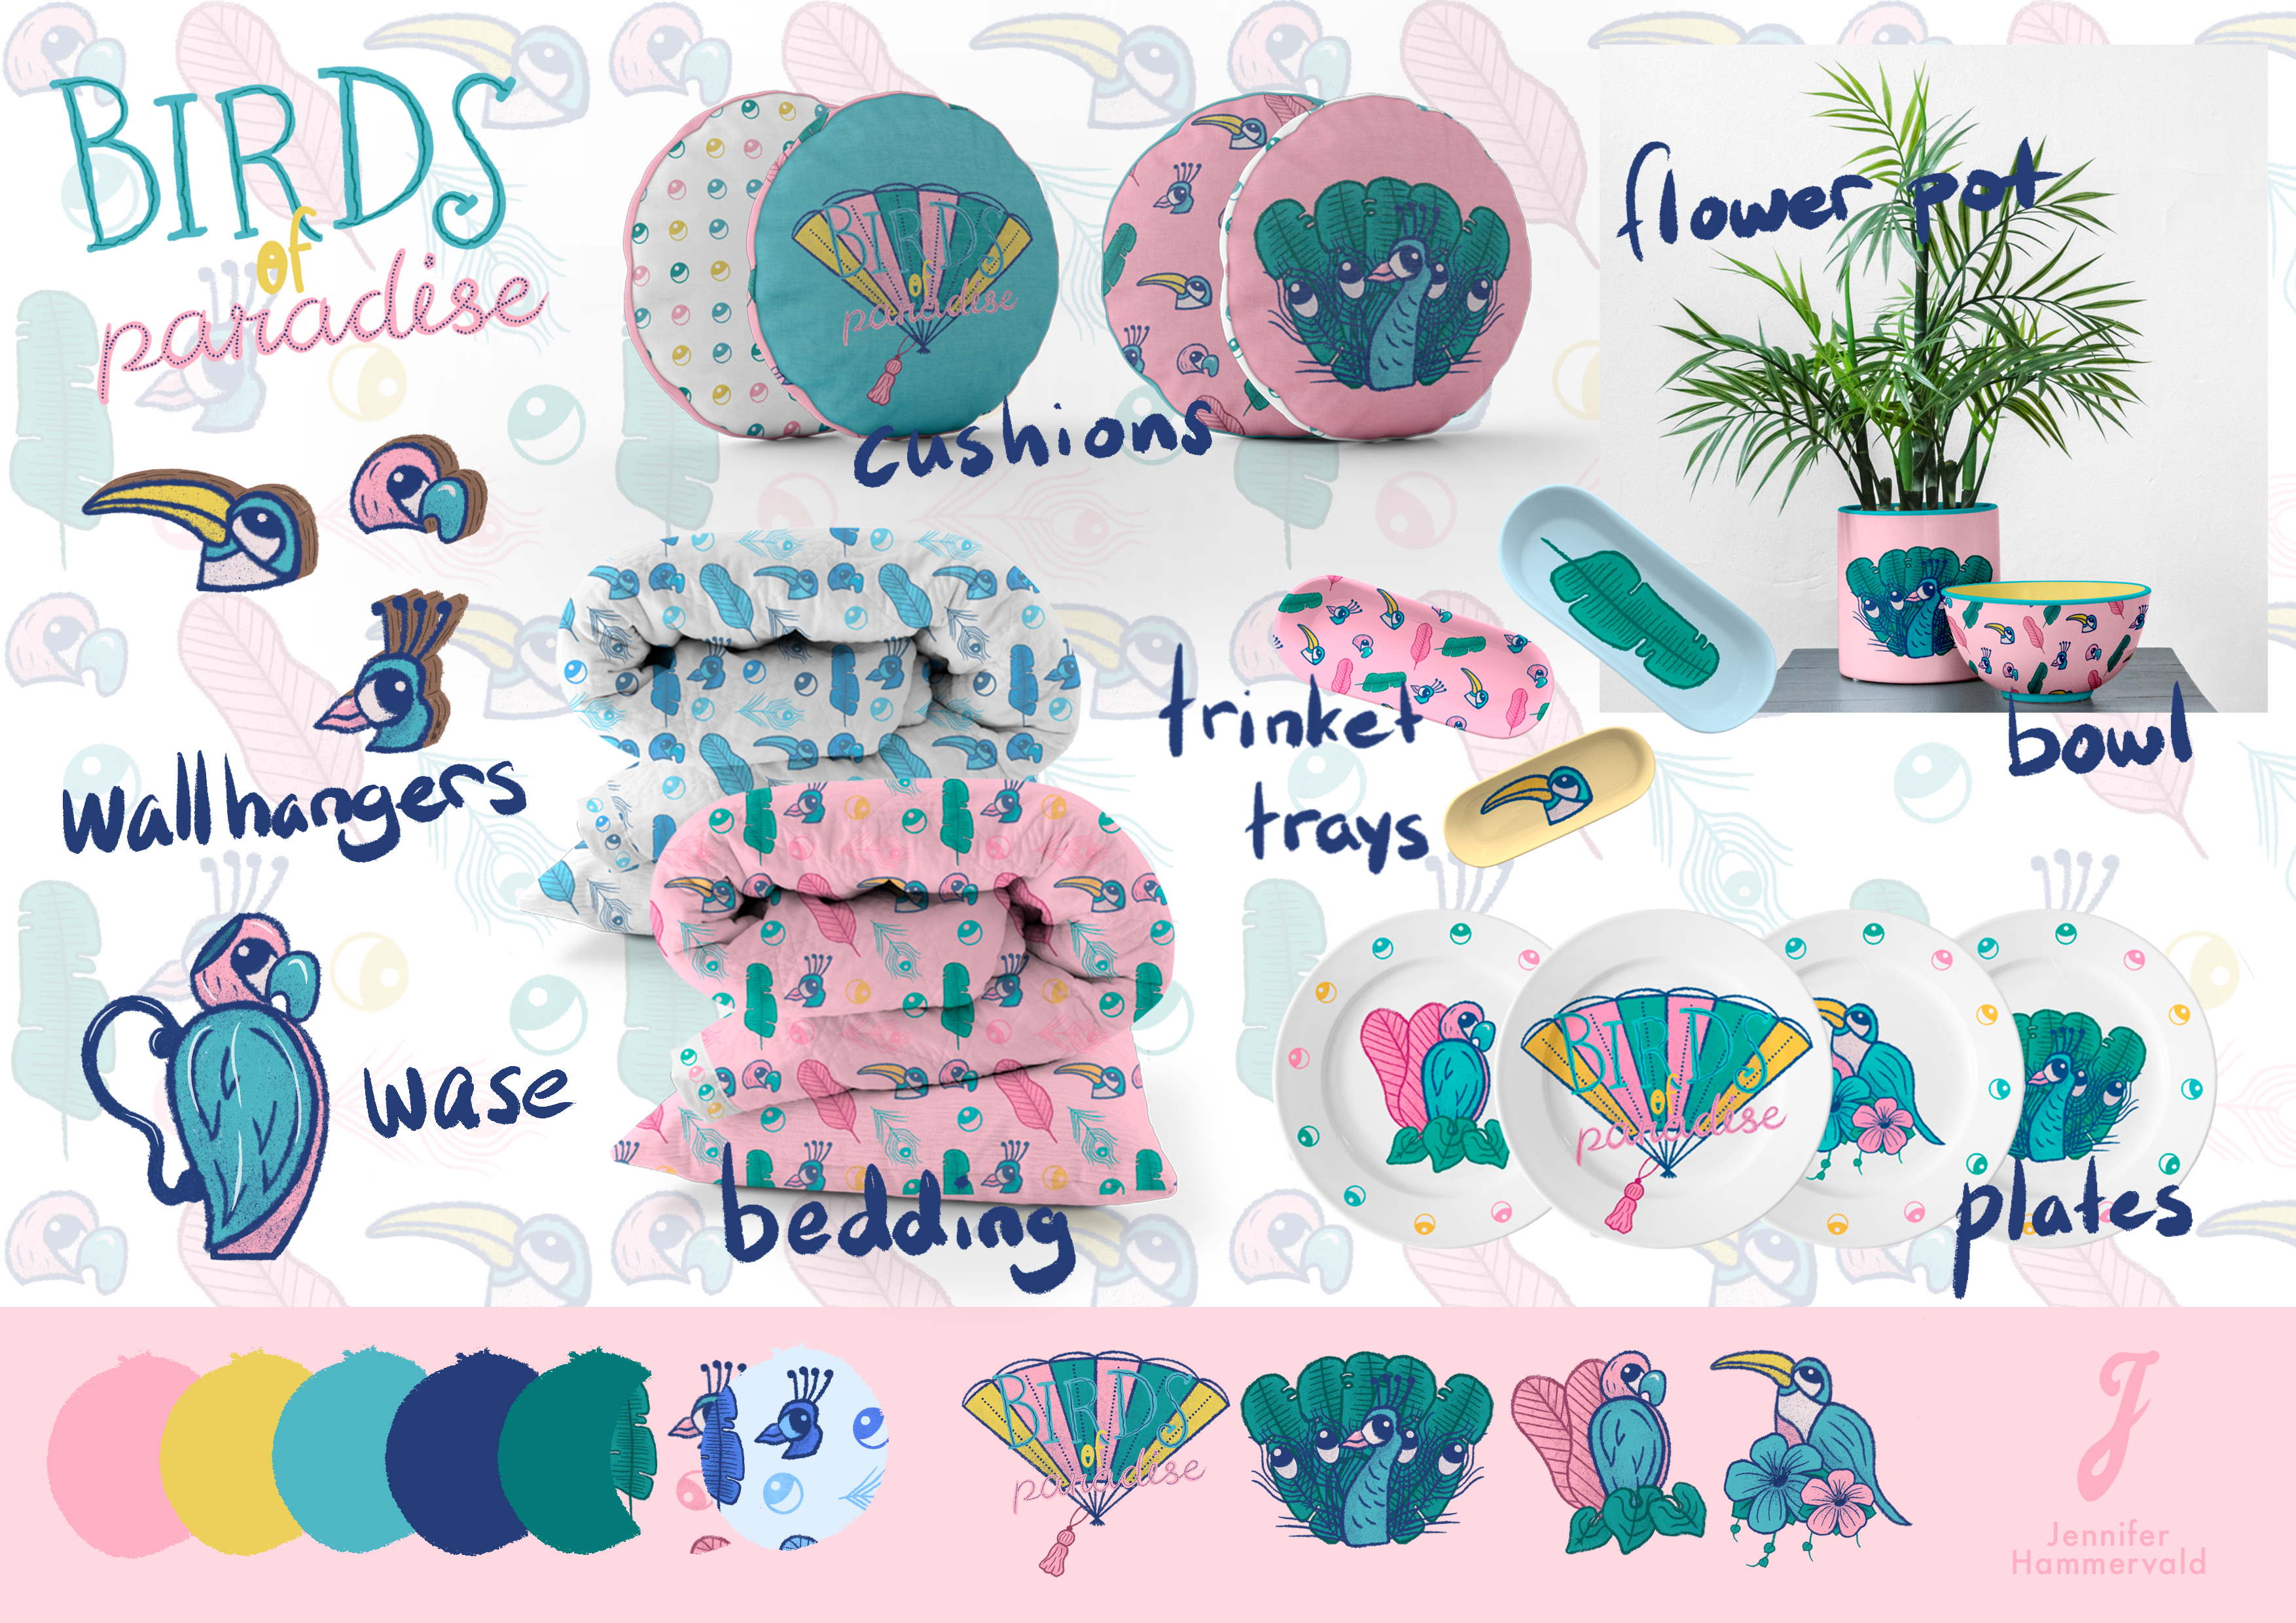 Jennis-Prints-Product-Design-Birds-of-Paradise-Products